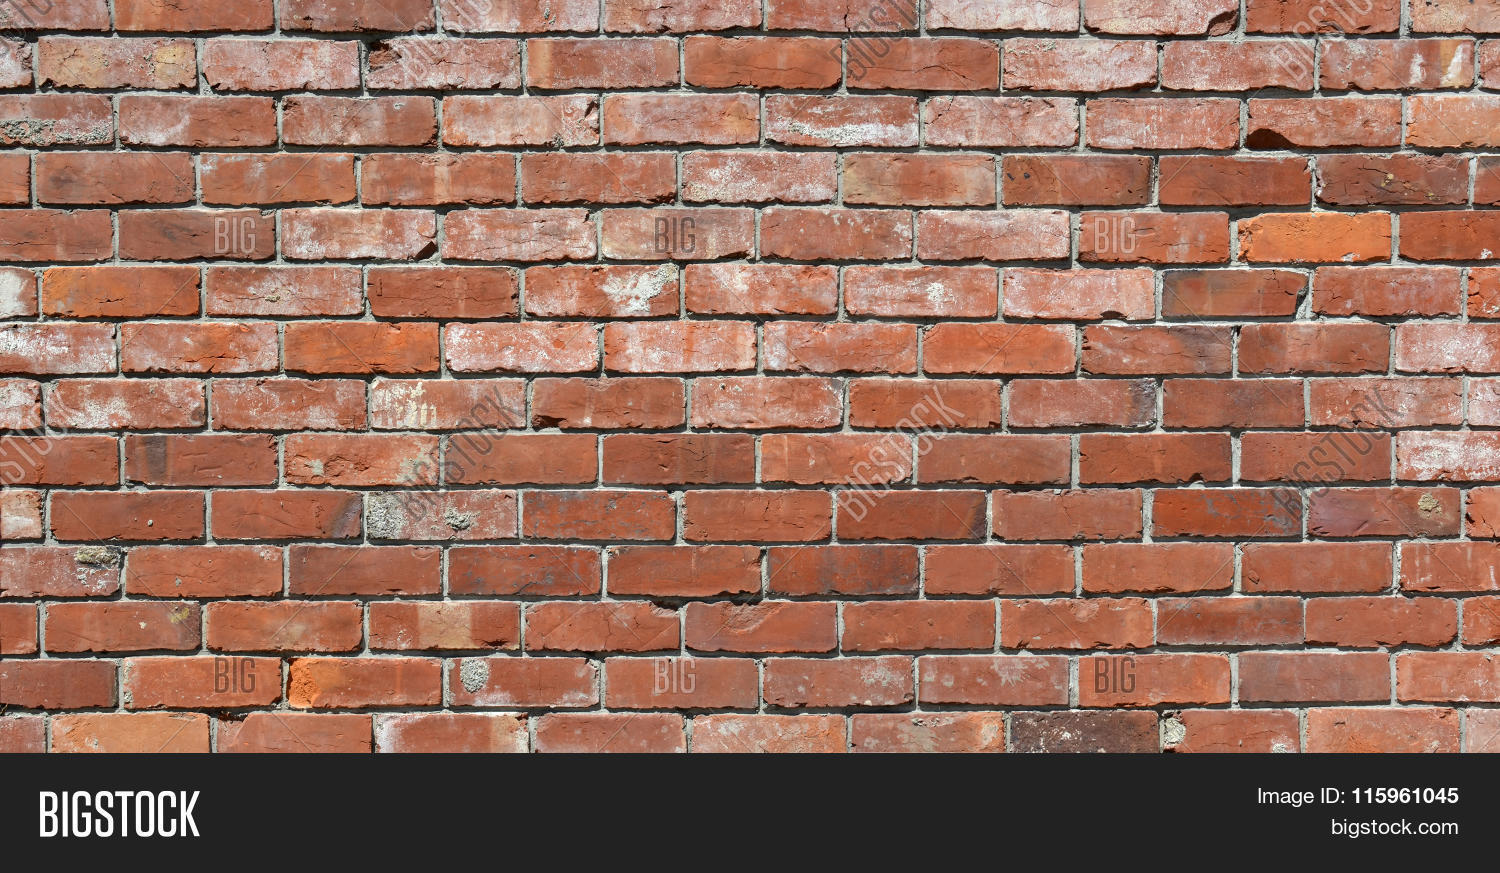 Long brick wall background lots image photo bigstock for Lots of pictures on wall